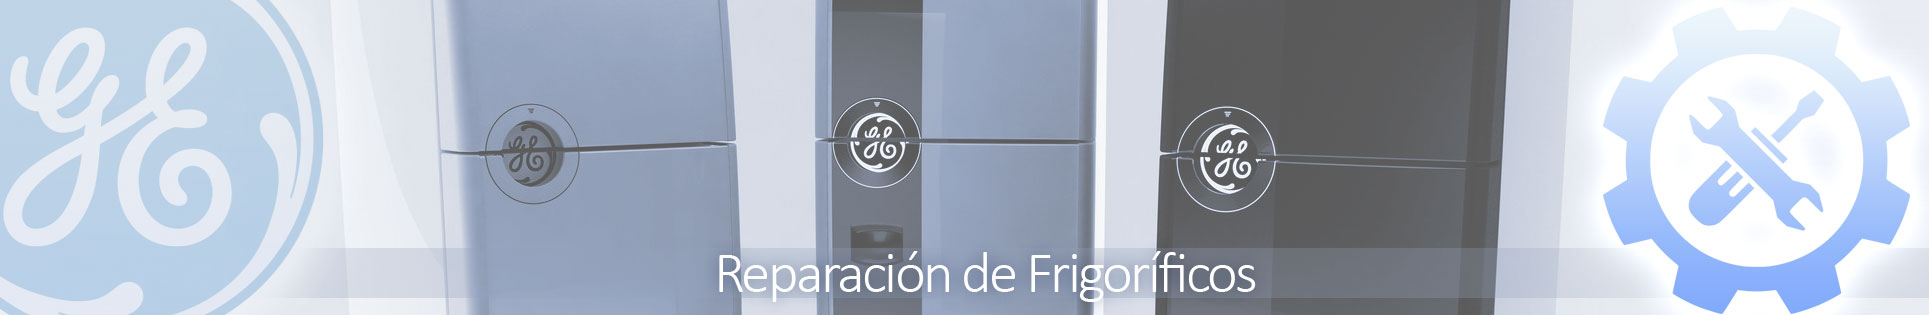 Reparacion de frigorificos general electric - Recambios general electric ...